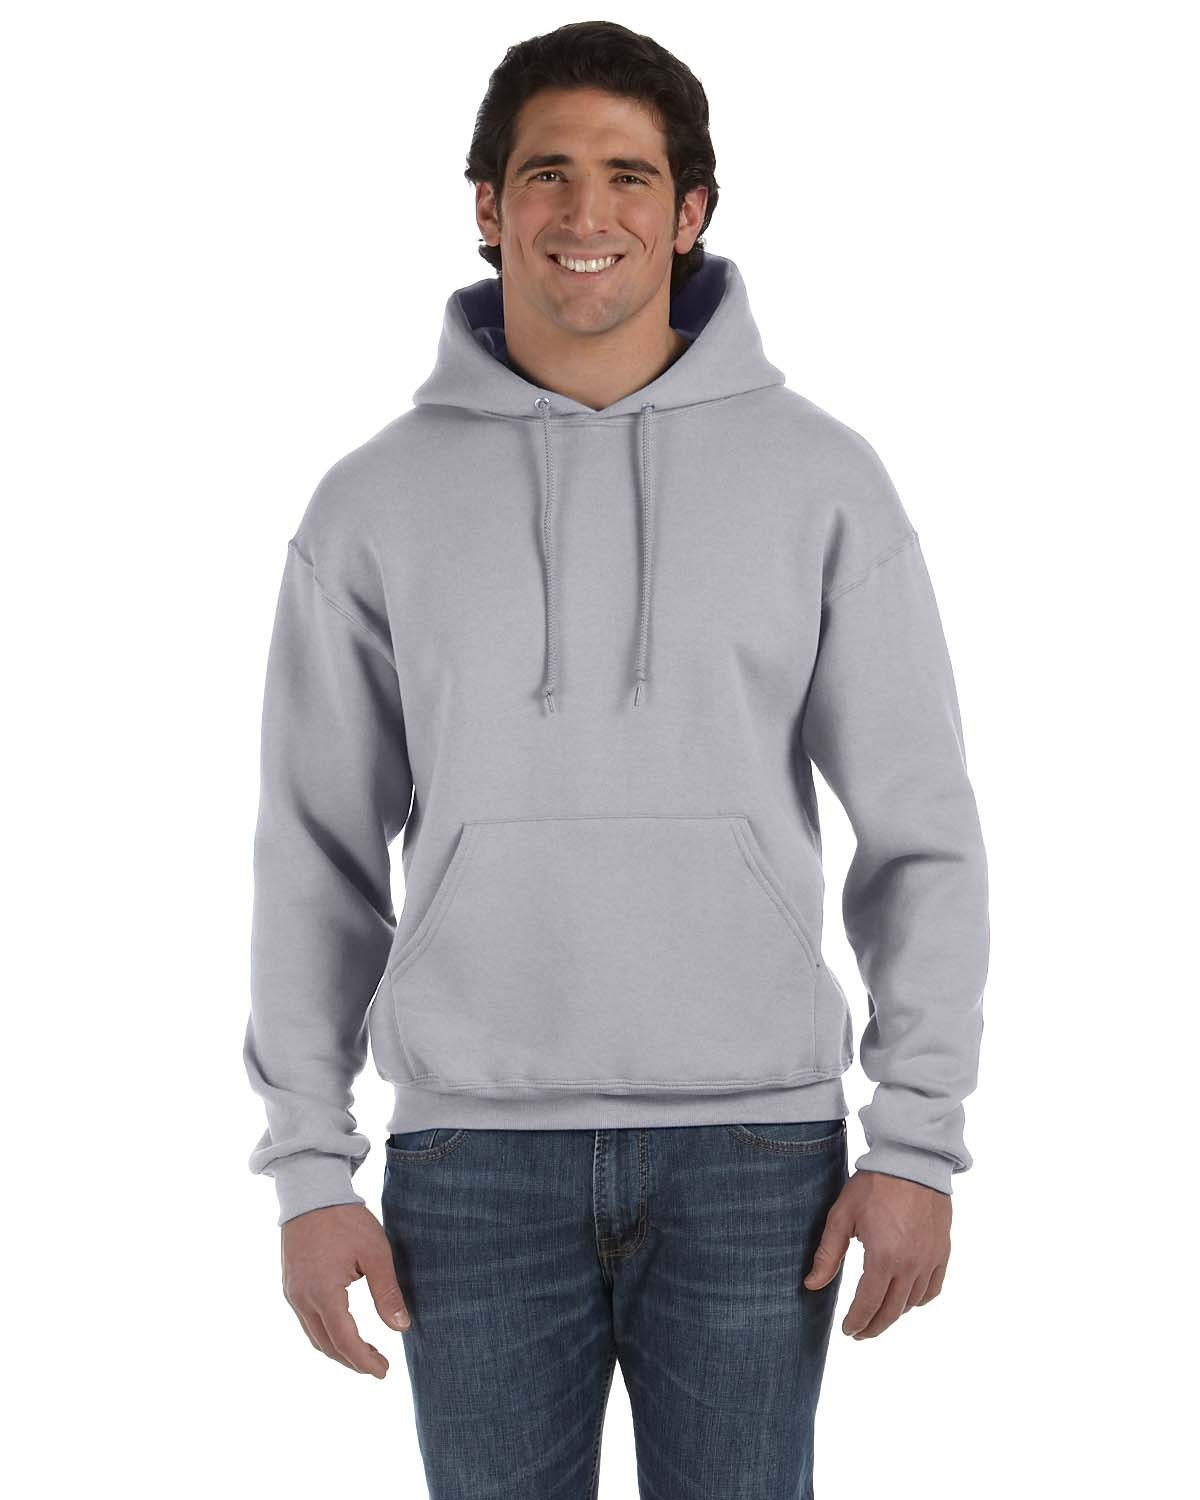 Fruit of the Loom Adult Supercotton™ Pullover Hooded Sweatshirt ATHLETIC HEATHER